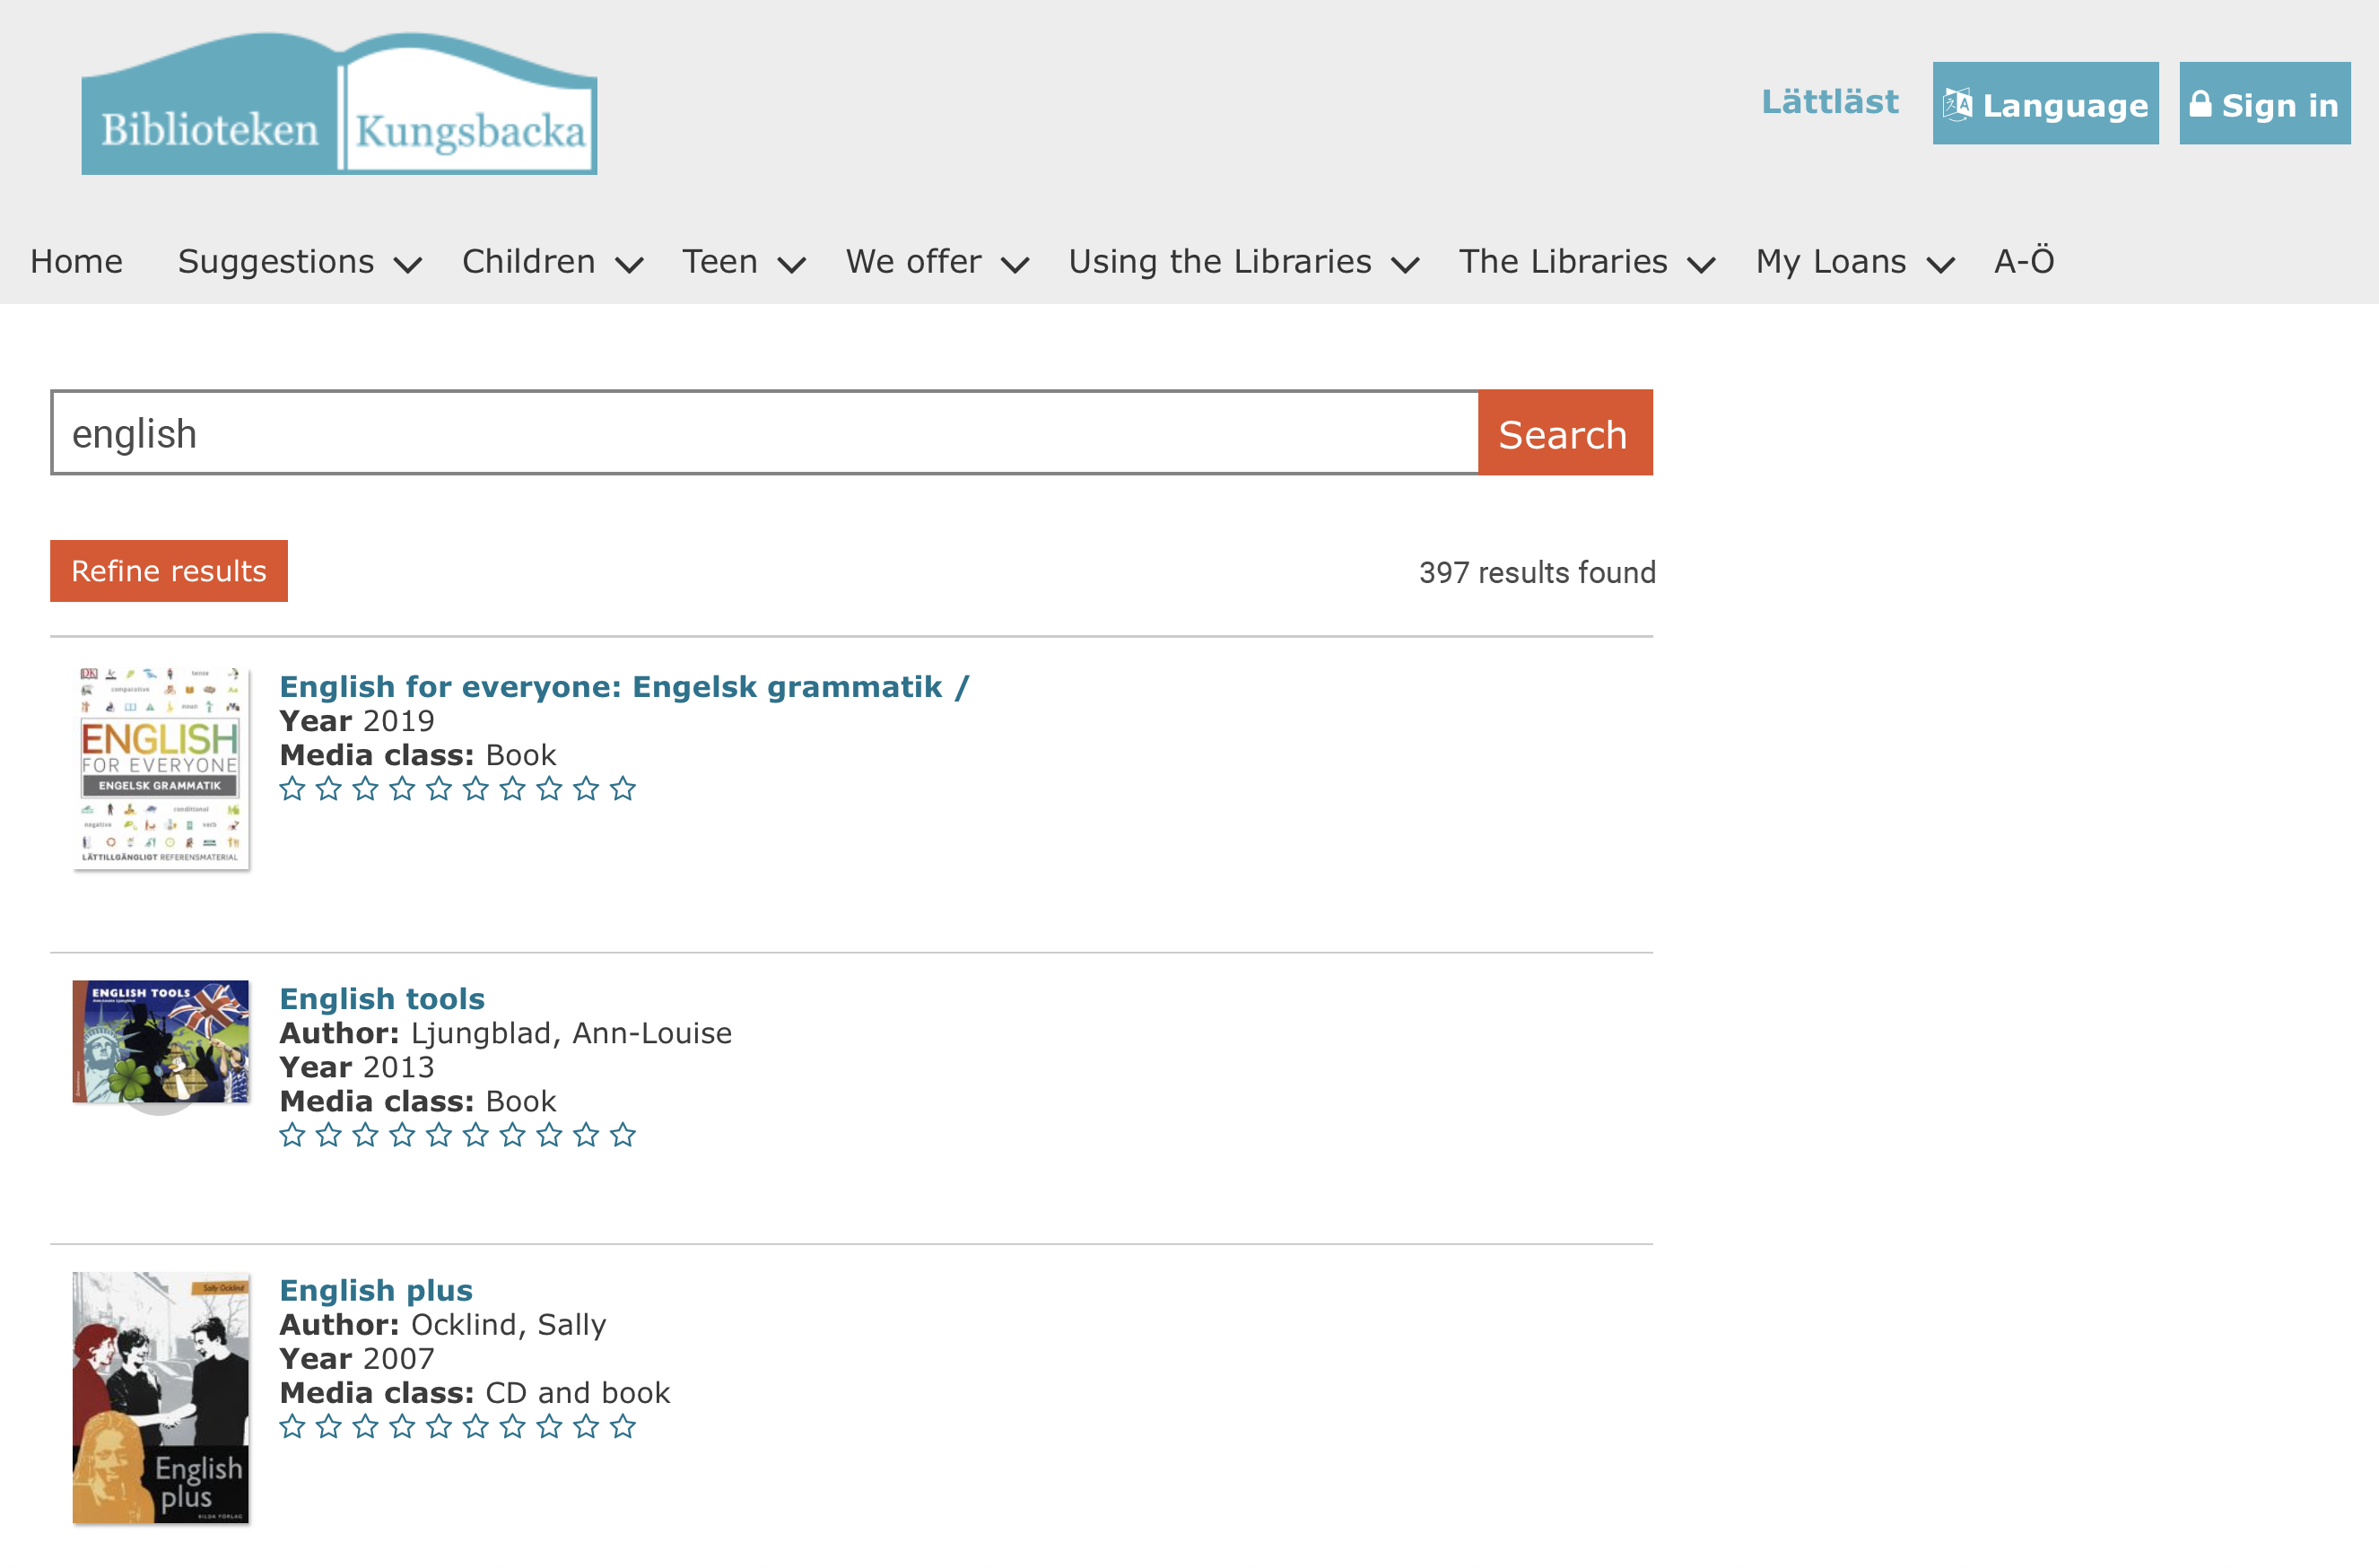 image of a not so busy search interface